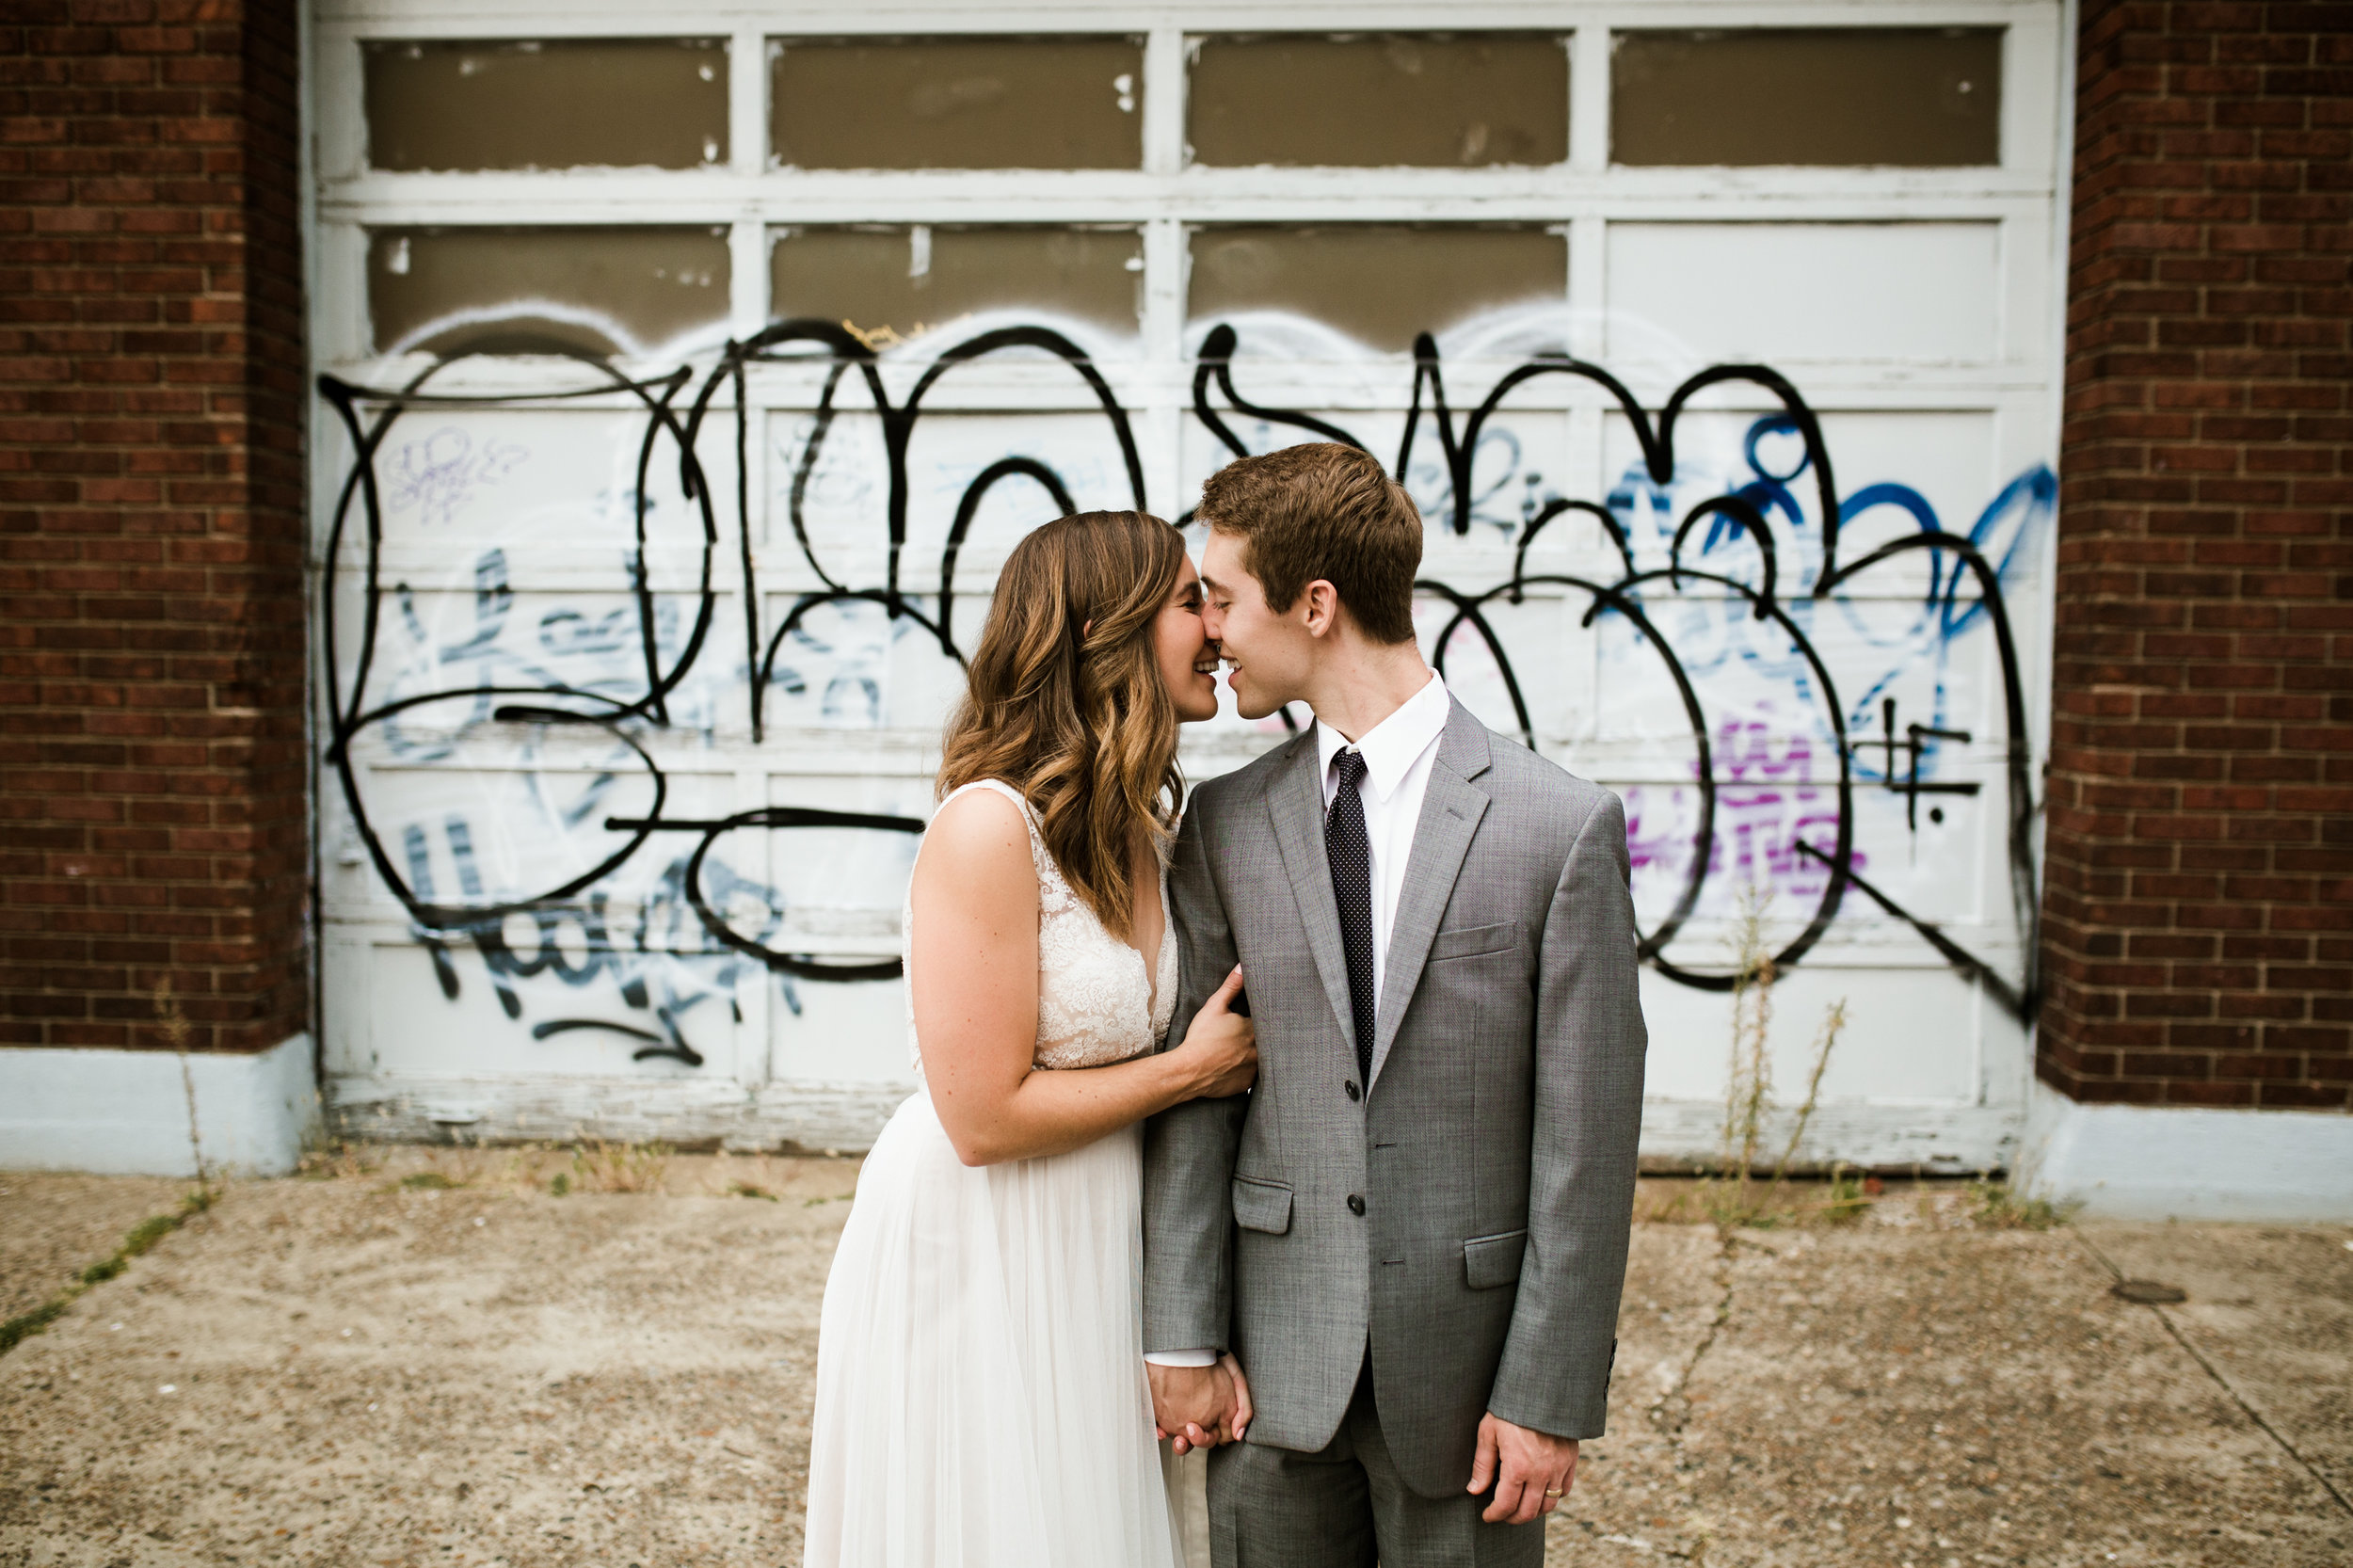 Amanda & Dave Anniversary 2018 Crystal Ludwick Photo Louisville Wedding Photographer Kentucky Wedding Photographer (29 of 43).jpg